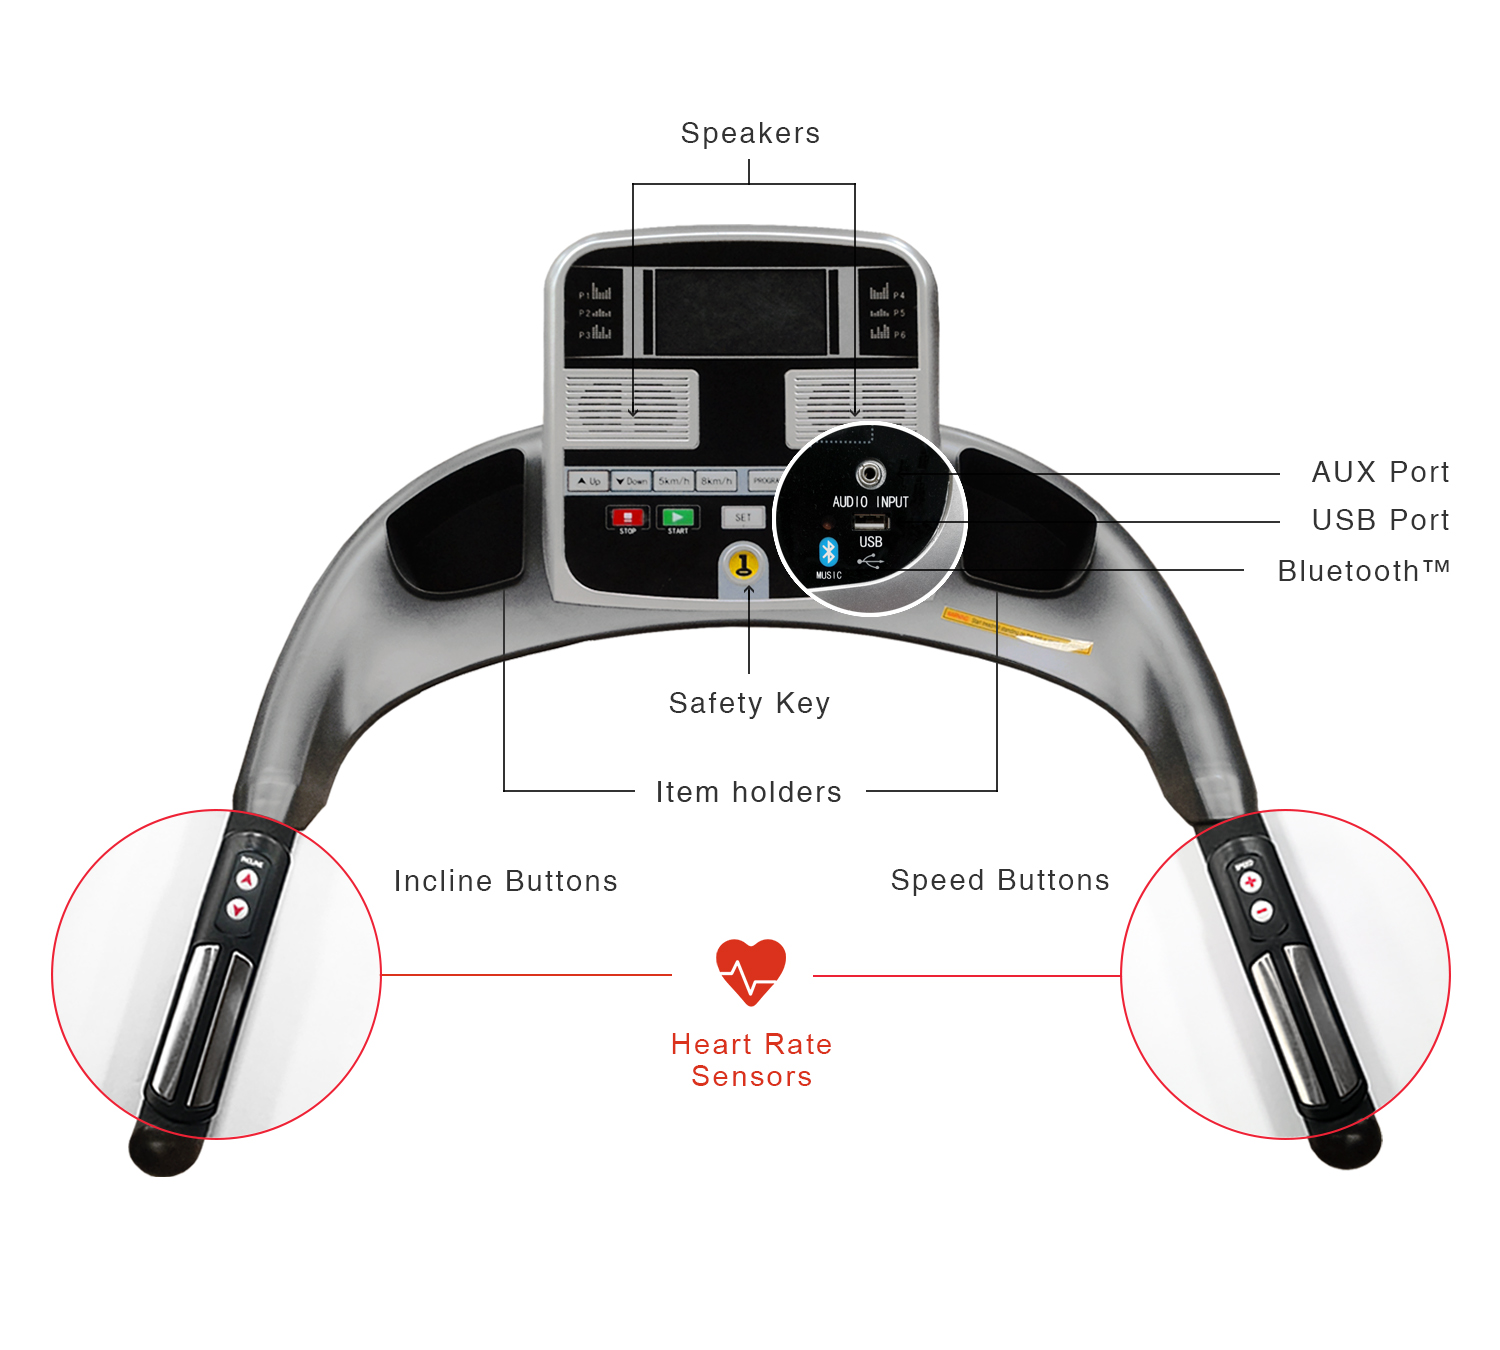 The S400 monitor features: speakers, AUX Port, USB Port, Built-in Bluetooth, Safety Key tray and Heart Rate Sensors with Speed and Incline buttons